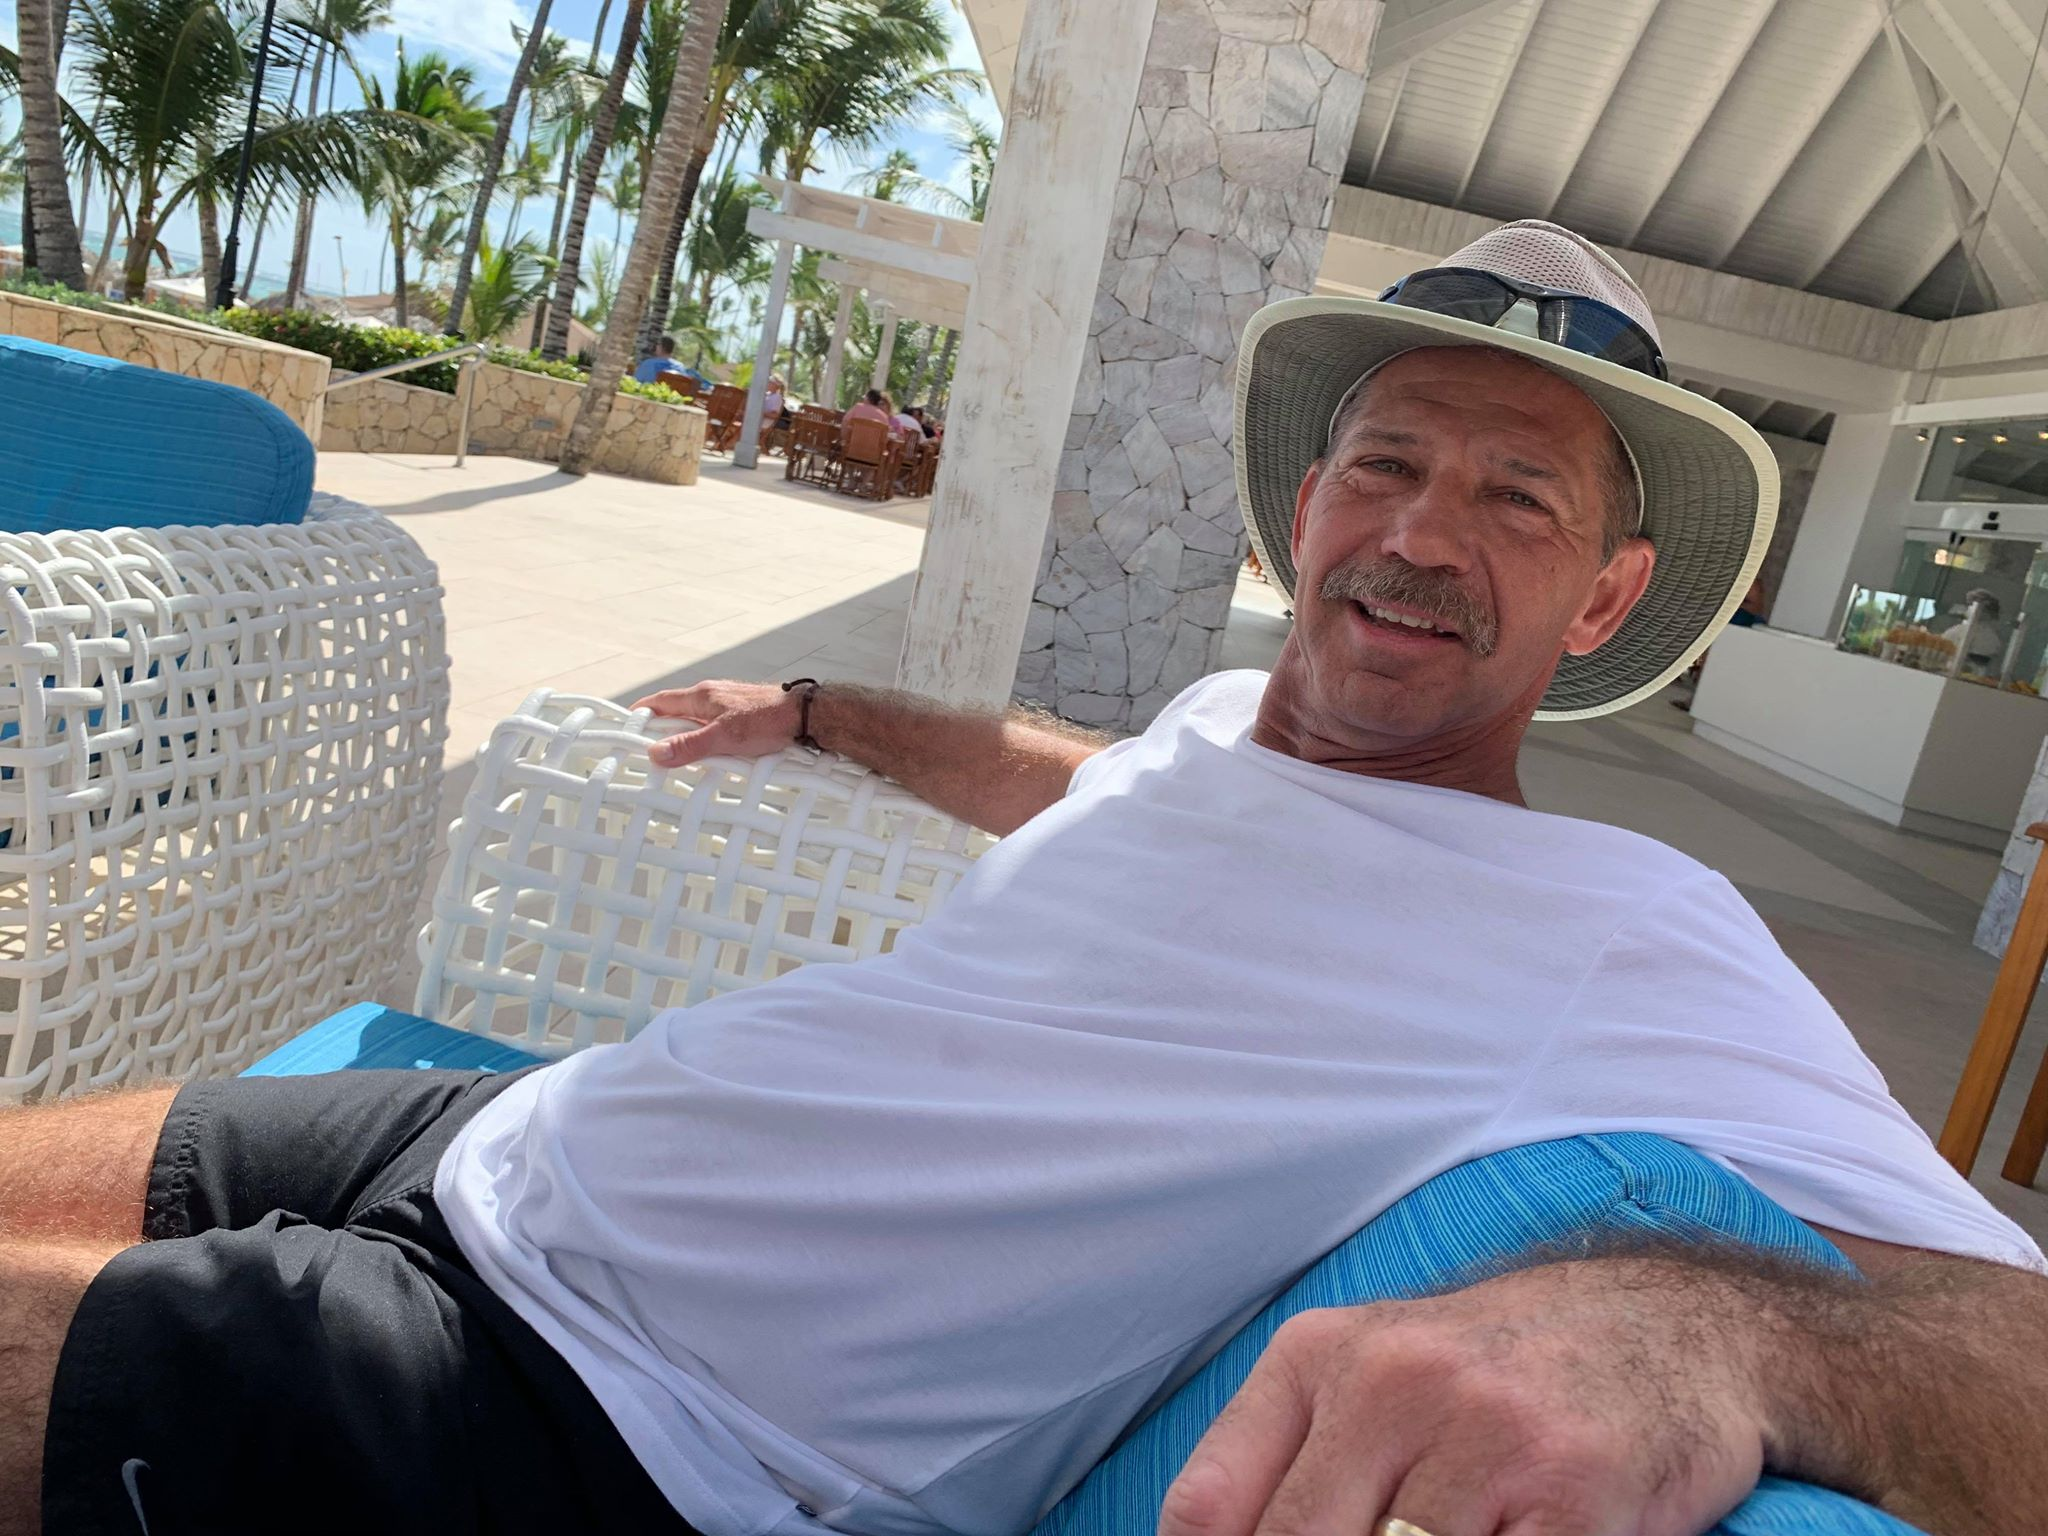 My dad relaxing on a well-earned vacation in Punta Cana earlier this year.